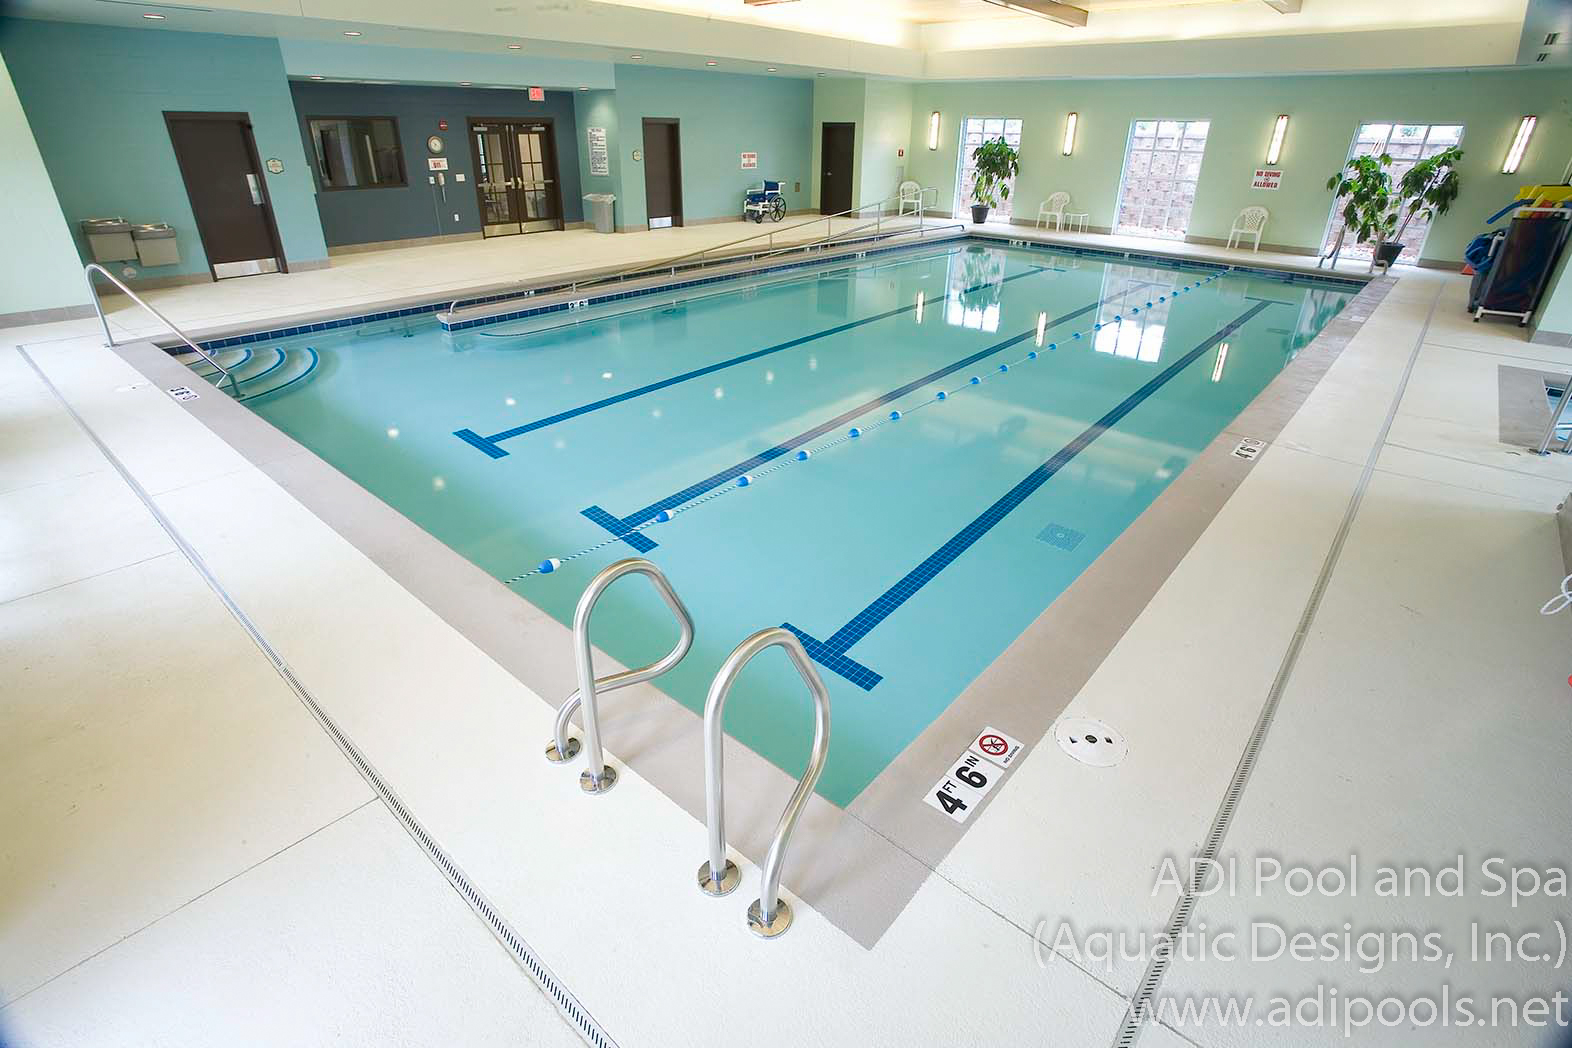 9-therapy-pool-with-lap-lanes.jpg